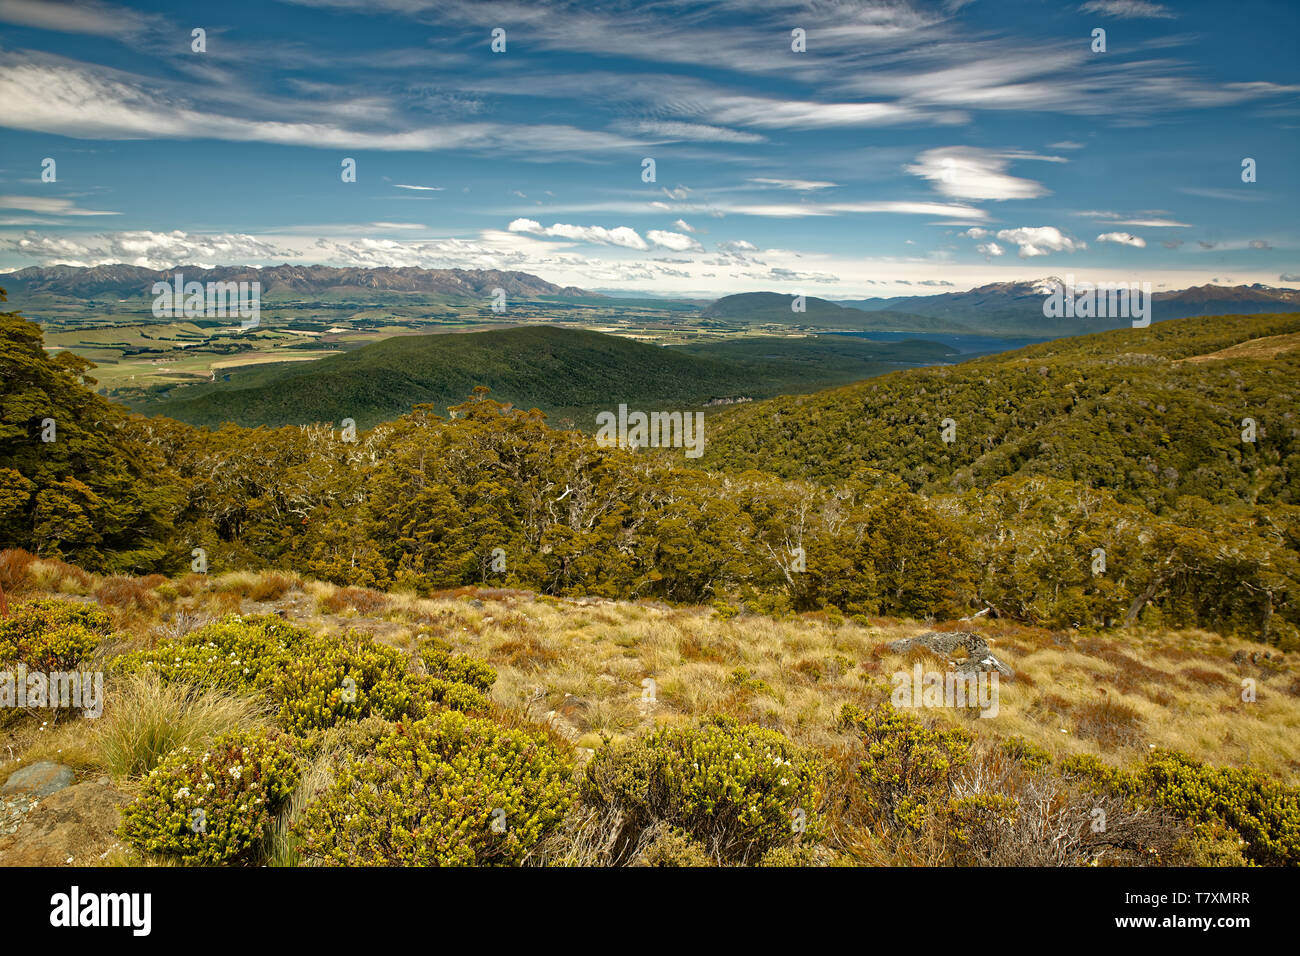 Landscape New Zealand - National Park Fiordland, South Island, beautiful mountain and fiord sceneries. Stock Photo